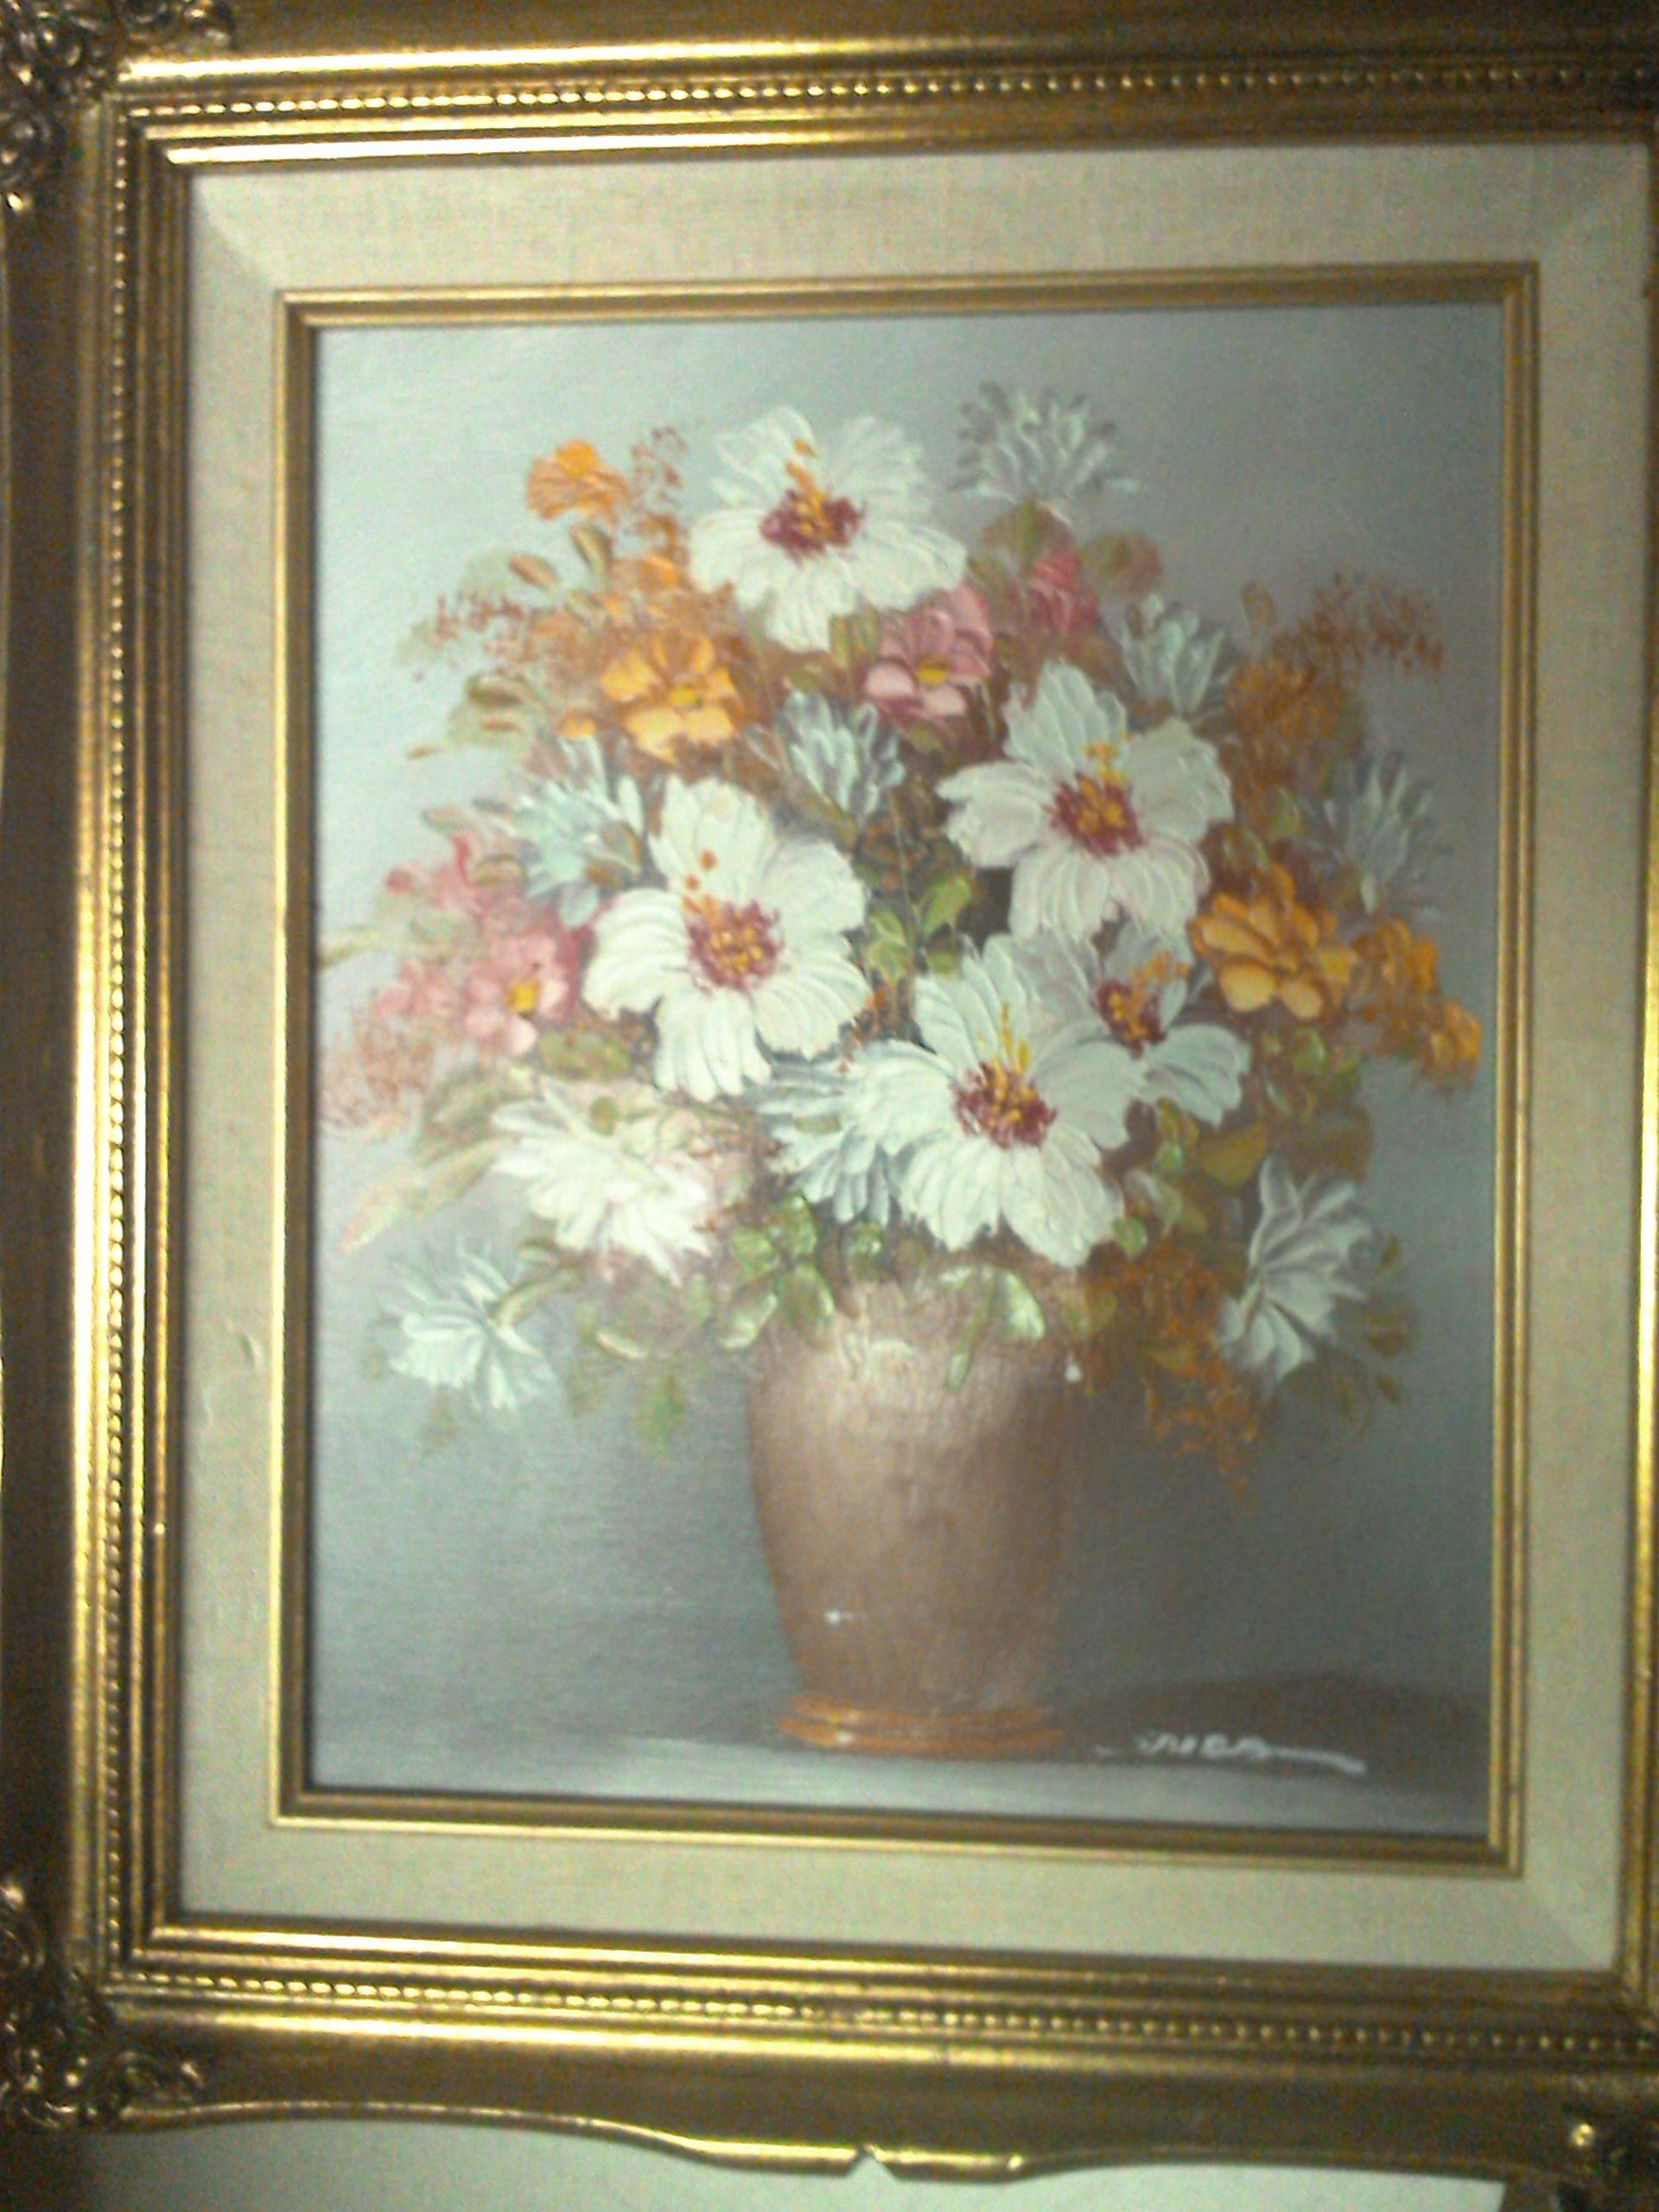 Personal Preference Painting Antique Appraisal Instappraisal